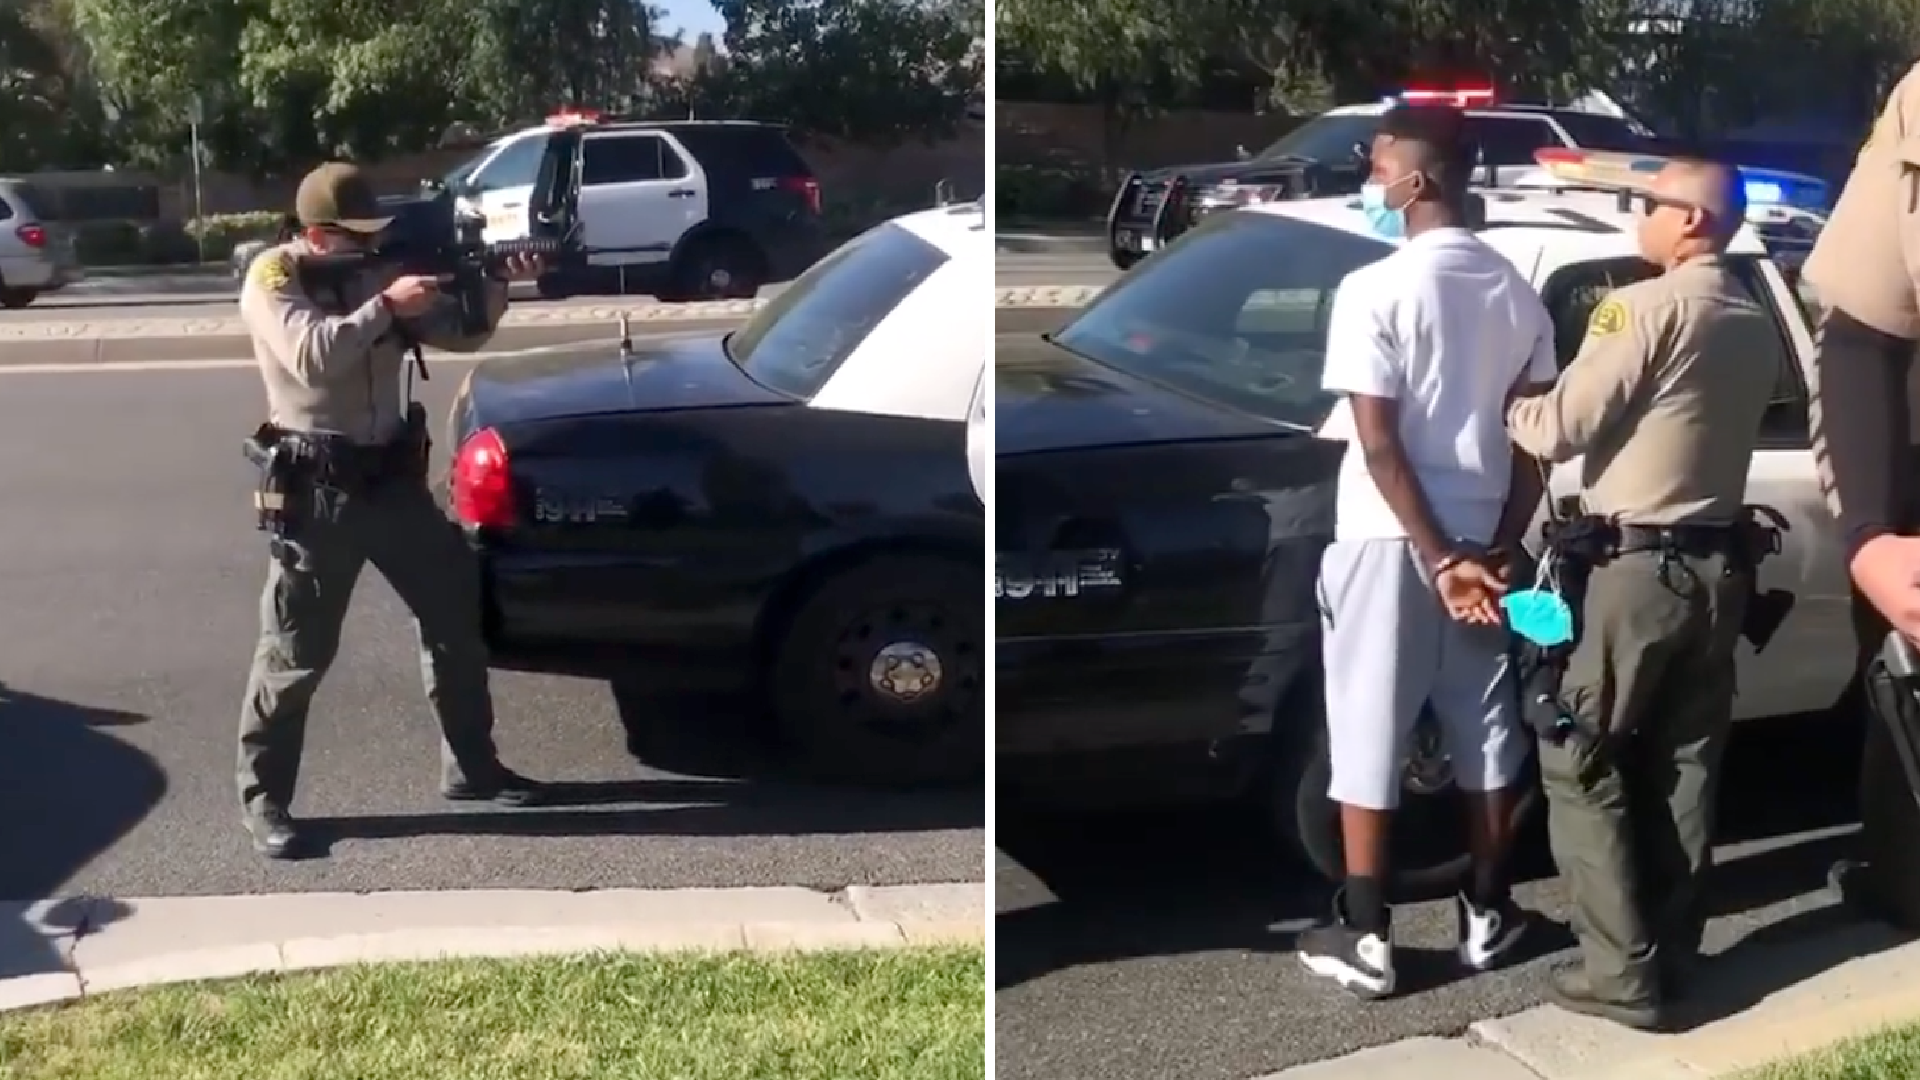 Deputies point guns at and detain teens in Santa Clarita on Aug. 7, 2020. (tammilaray/ Instagram)